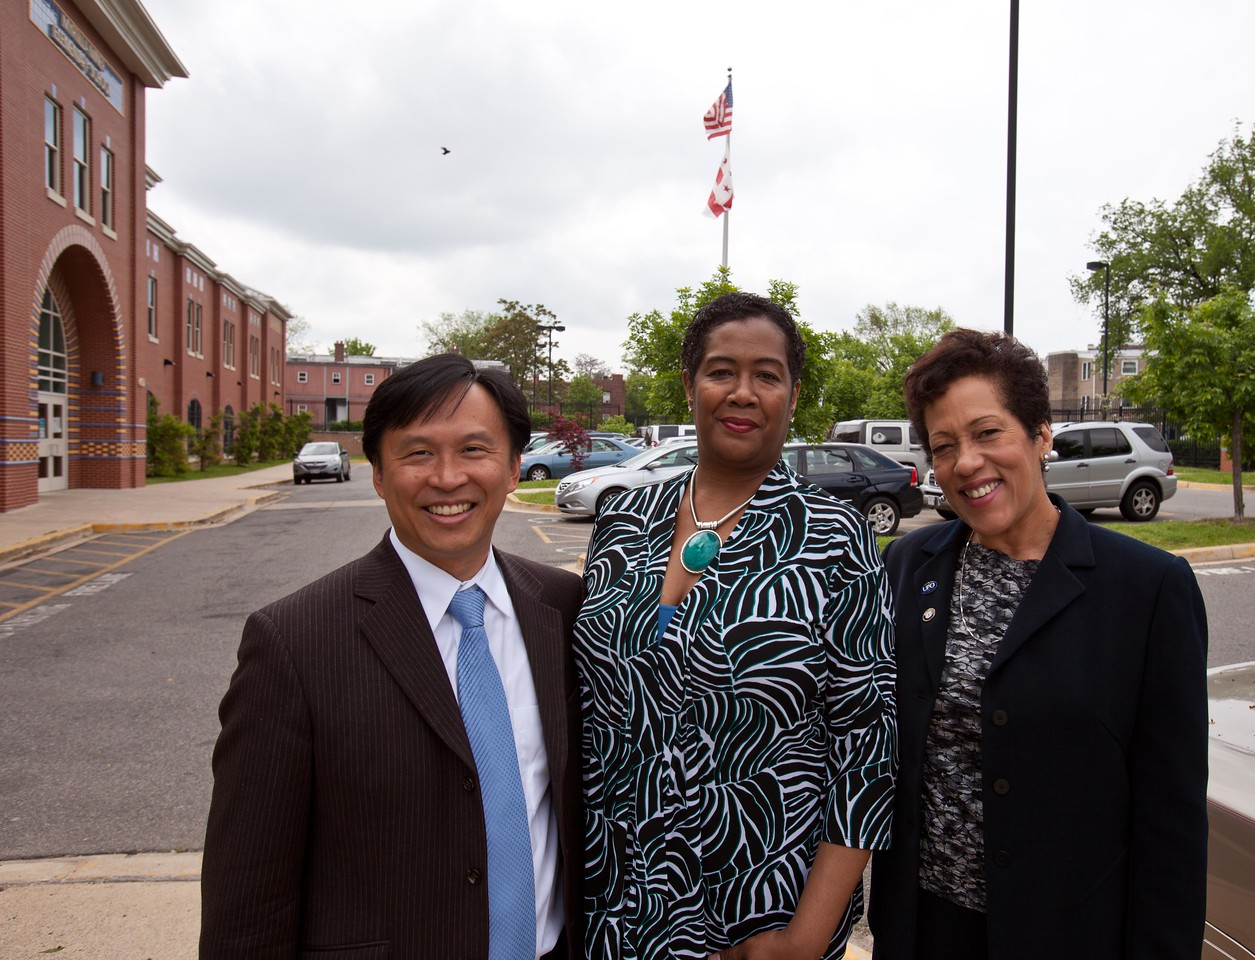 Director of Senior Corps, Dr. Erwin Tan, Principal LaVonne Taliaferro-Bunch of Miner Elementary, and FGP Program Director, Cheryl Christmas. Corporation for National and Community Service Photo.